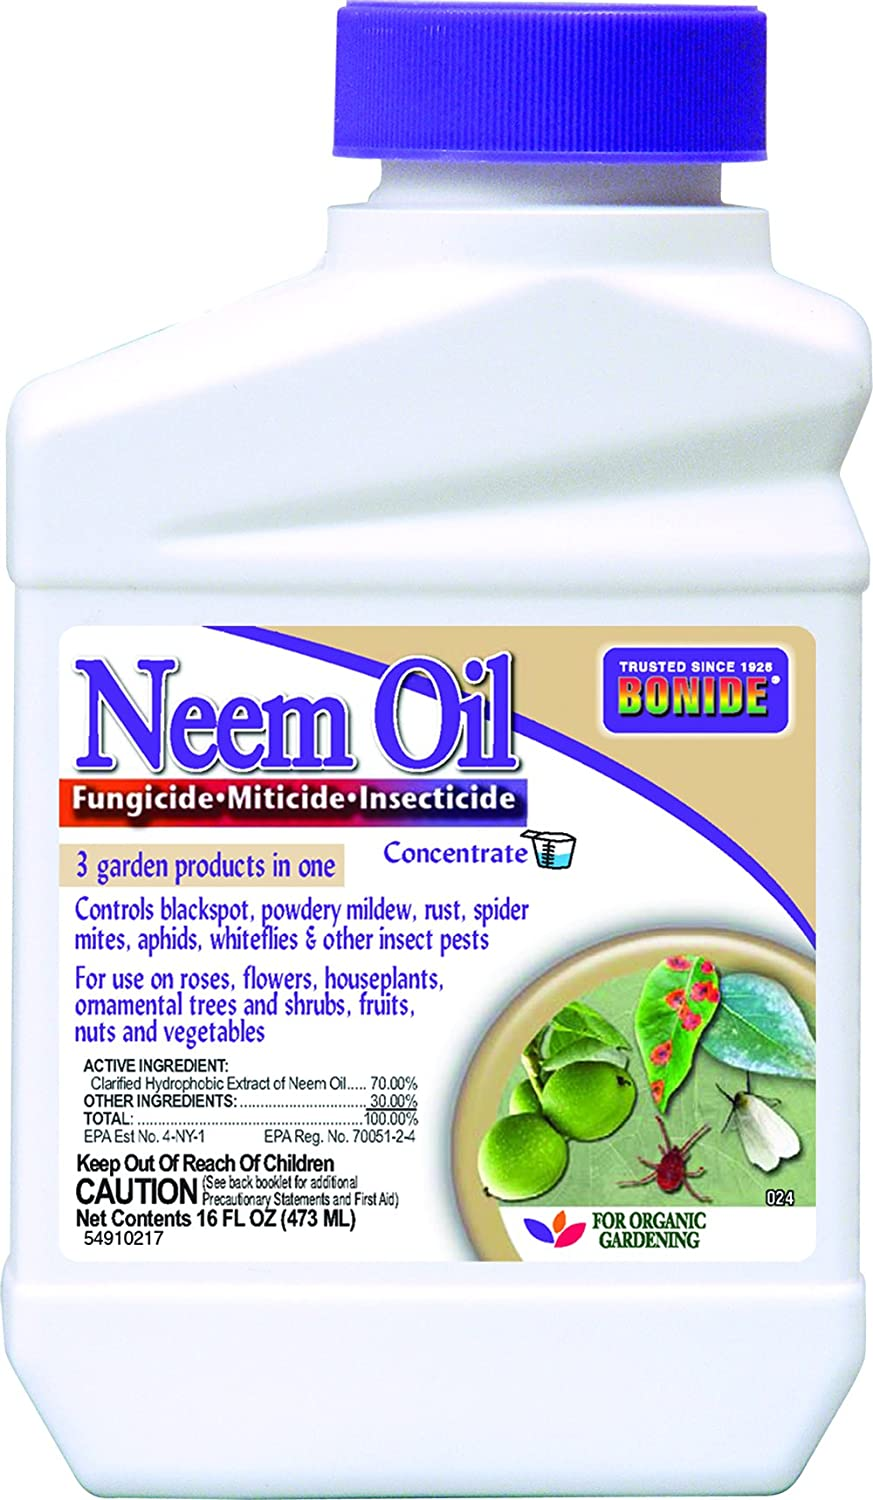 Bonide Products INC B006QYSAPQ 024 Concentrate Neem Oil Insect Repellent, 16-Ounce, 1, Multi